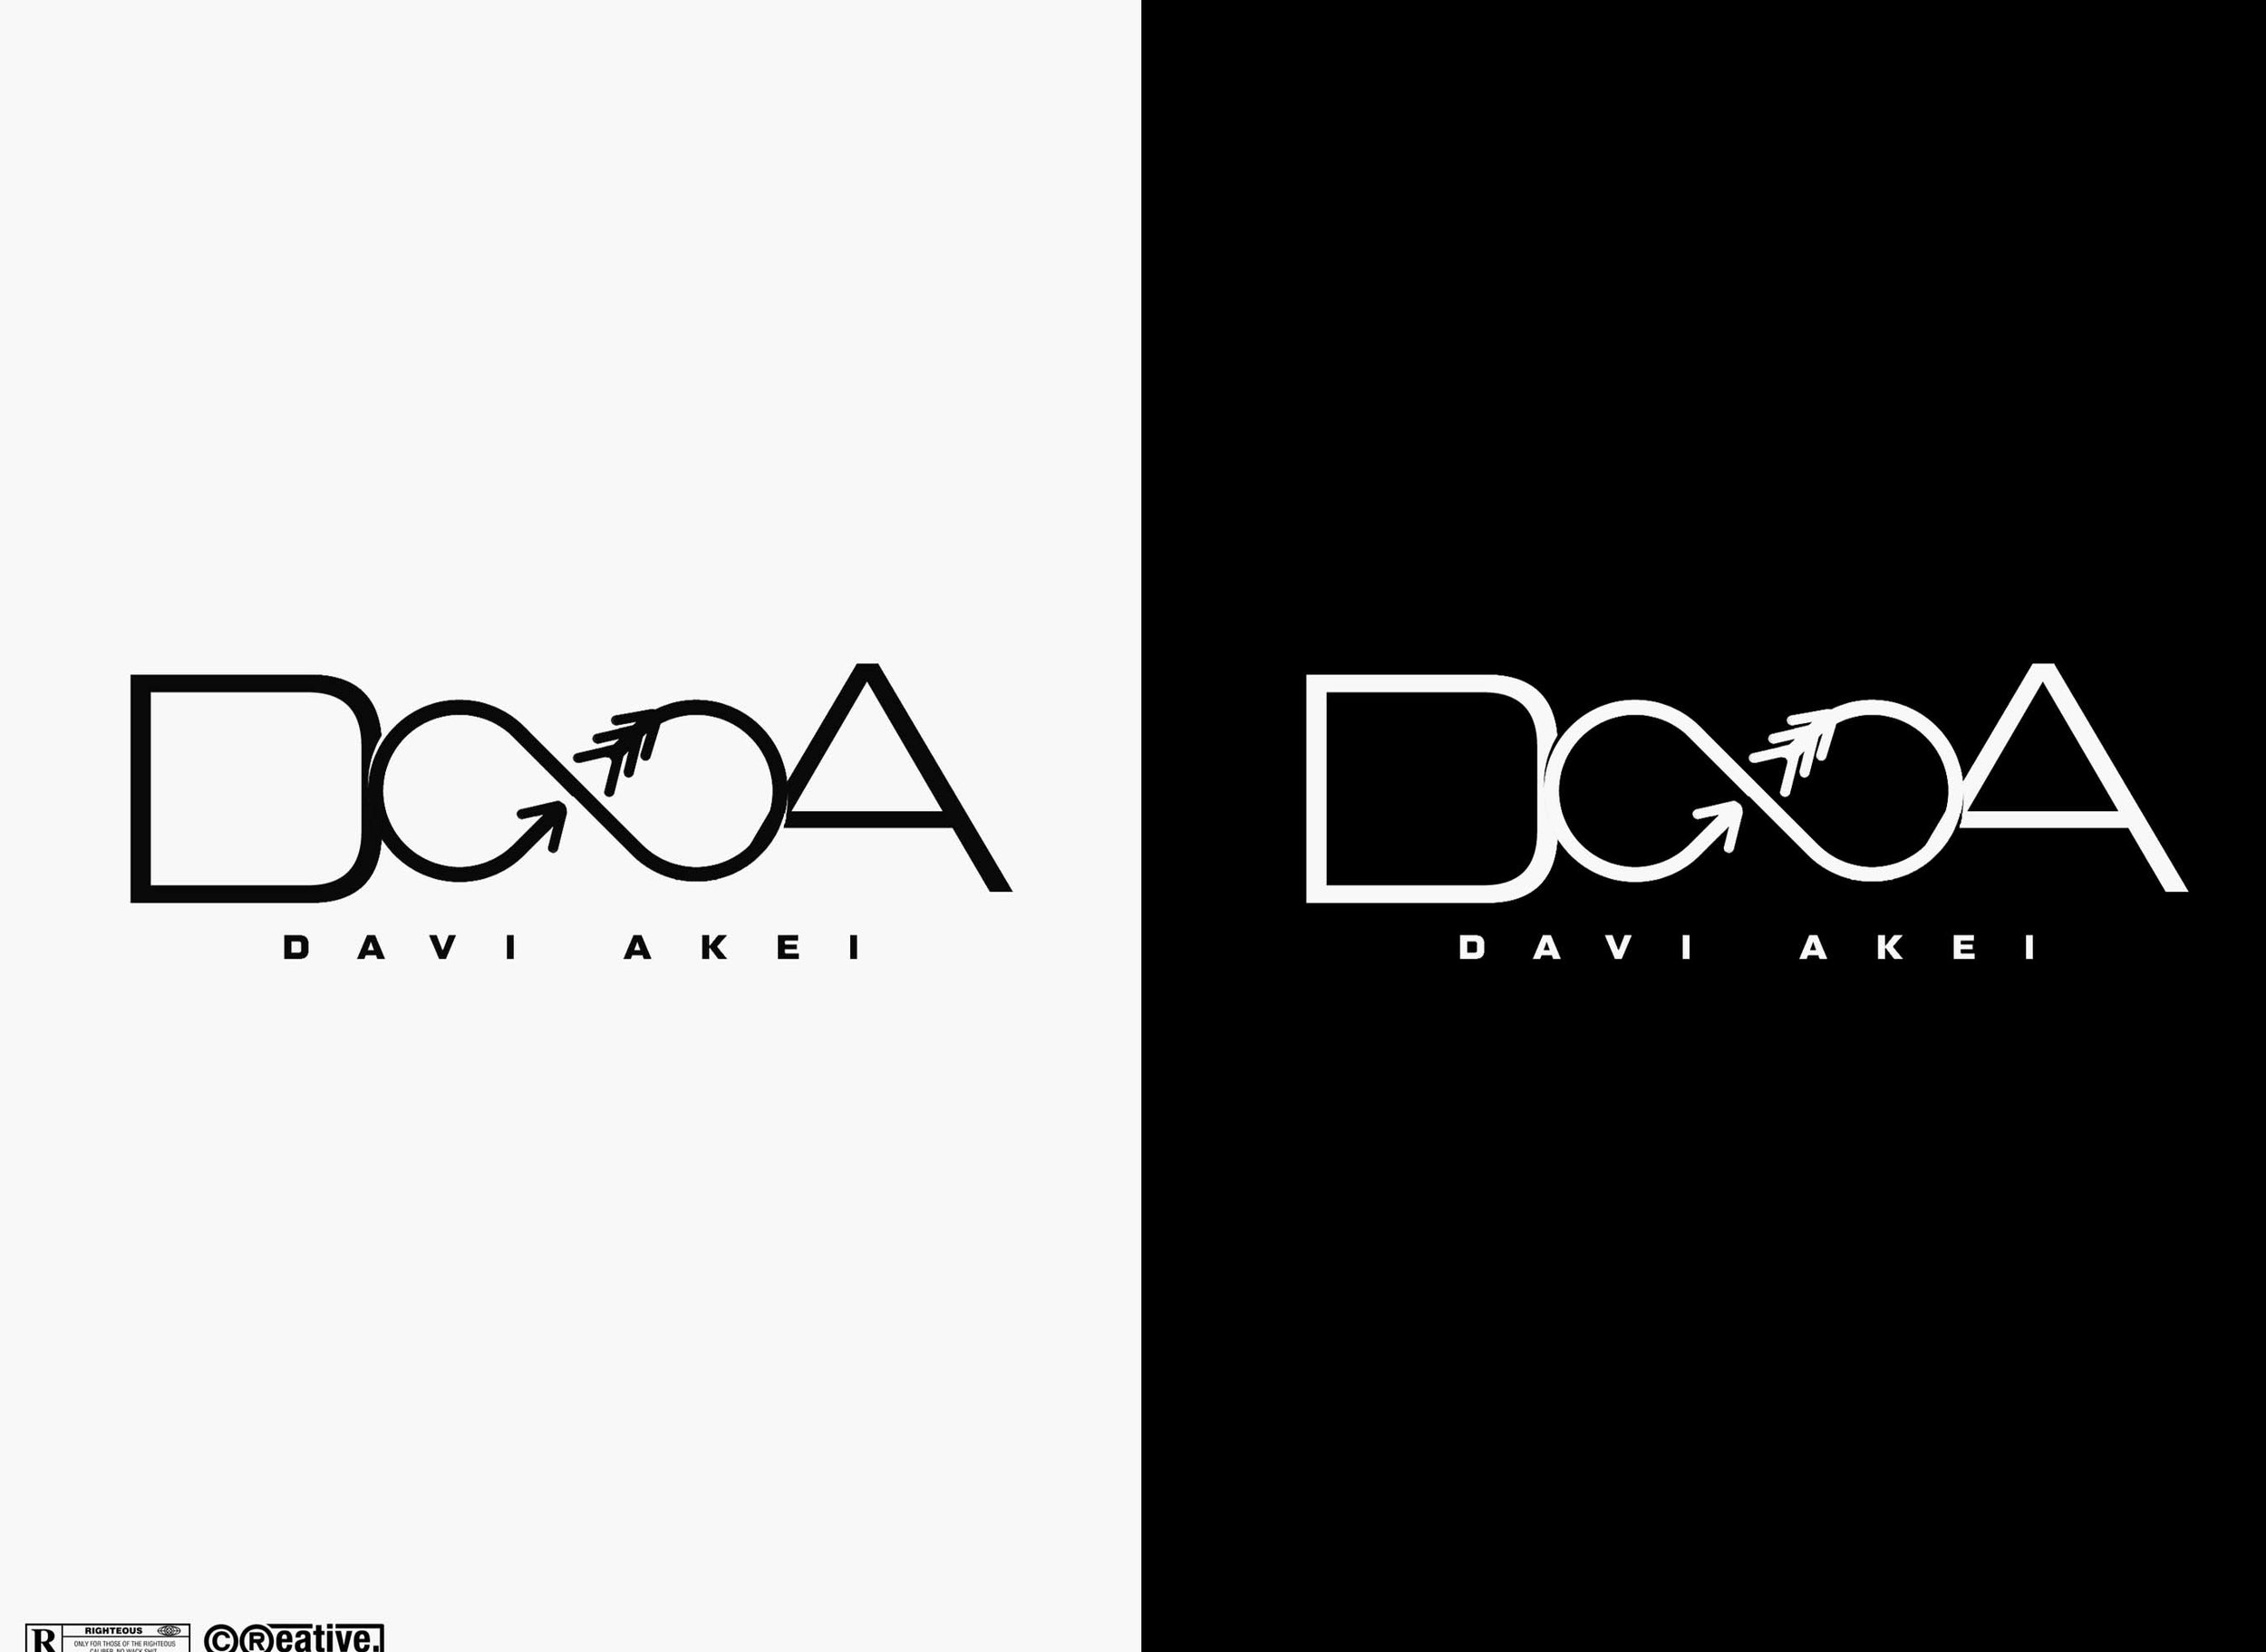 Artist logos - If you need a signature brandmark for your name, we can source the best talent to create your own unique artist logo for you to use on your website, album covers, press materials, and more.